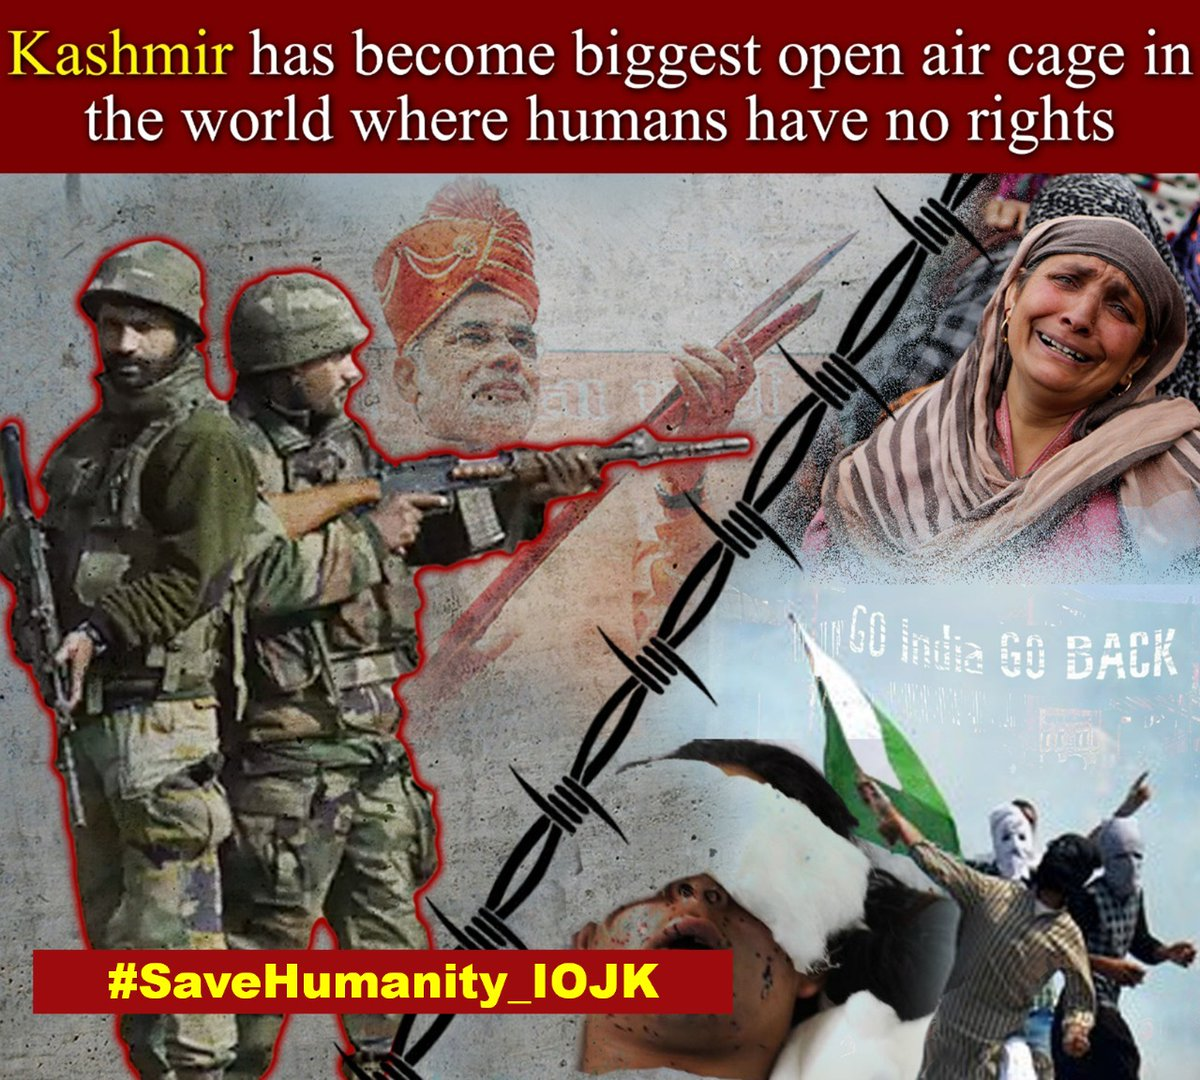 #SaveHumanity_IOJK Prime Minister Narendra Modi and the Hindu nationalist Bharatiya Janata Party had long opposed Article 370 and revoking it was in the party's 2019 election manifesto. @TeamISPOfficialpic.twitter.com/BFBD0itDyX